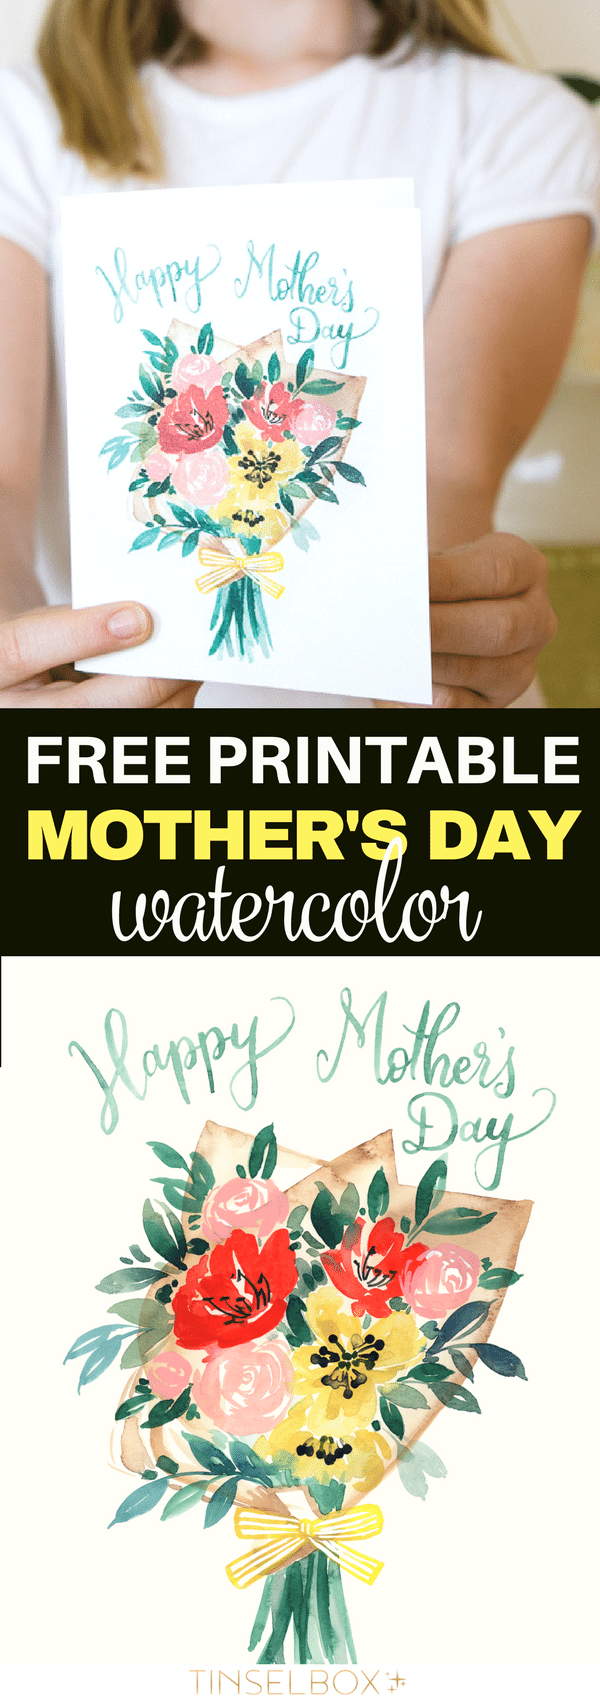 Your mom will LOVE this watercolor Mother's Day Card! It's a free printable set of cards or wall prints. Check out these and other designs. #printable #freeprintable #watercolor #mothersday